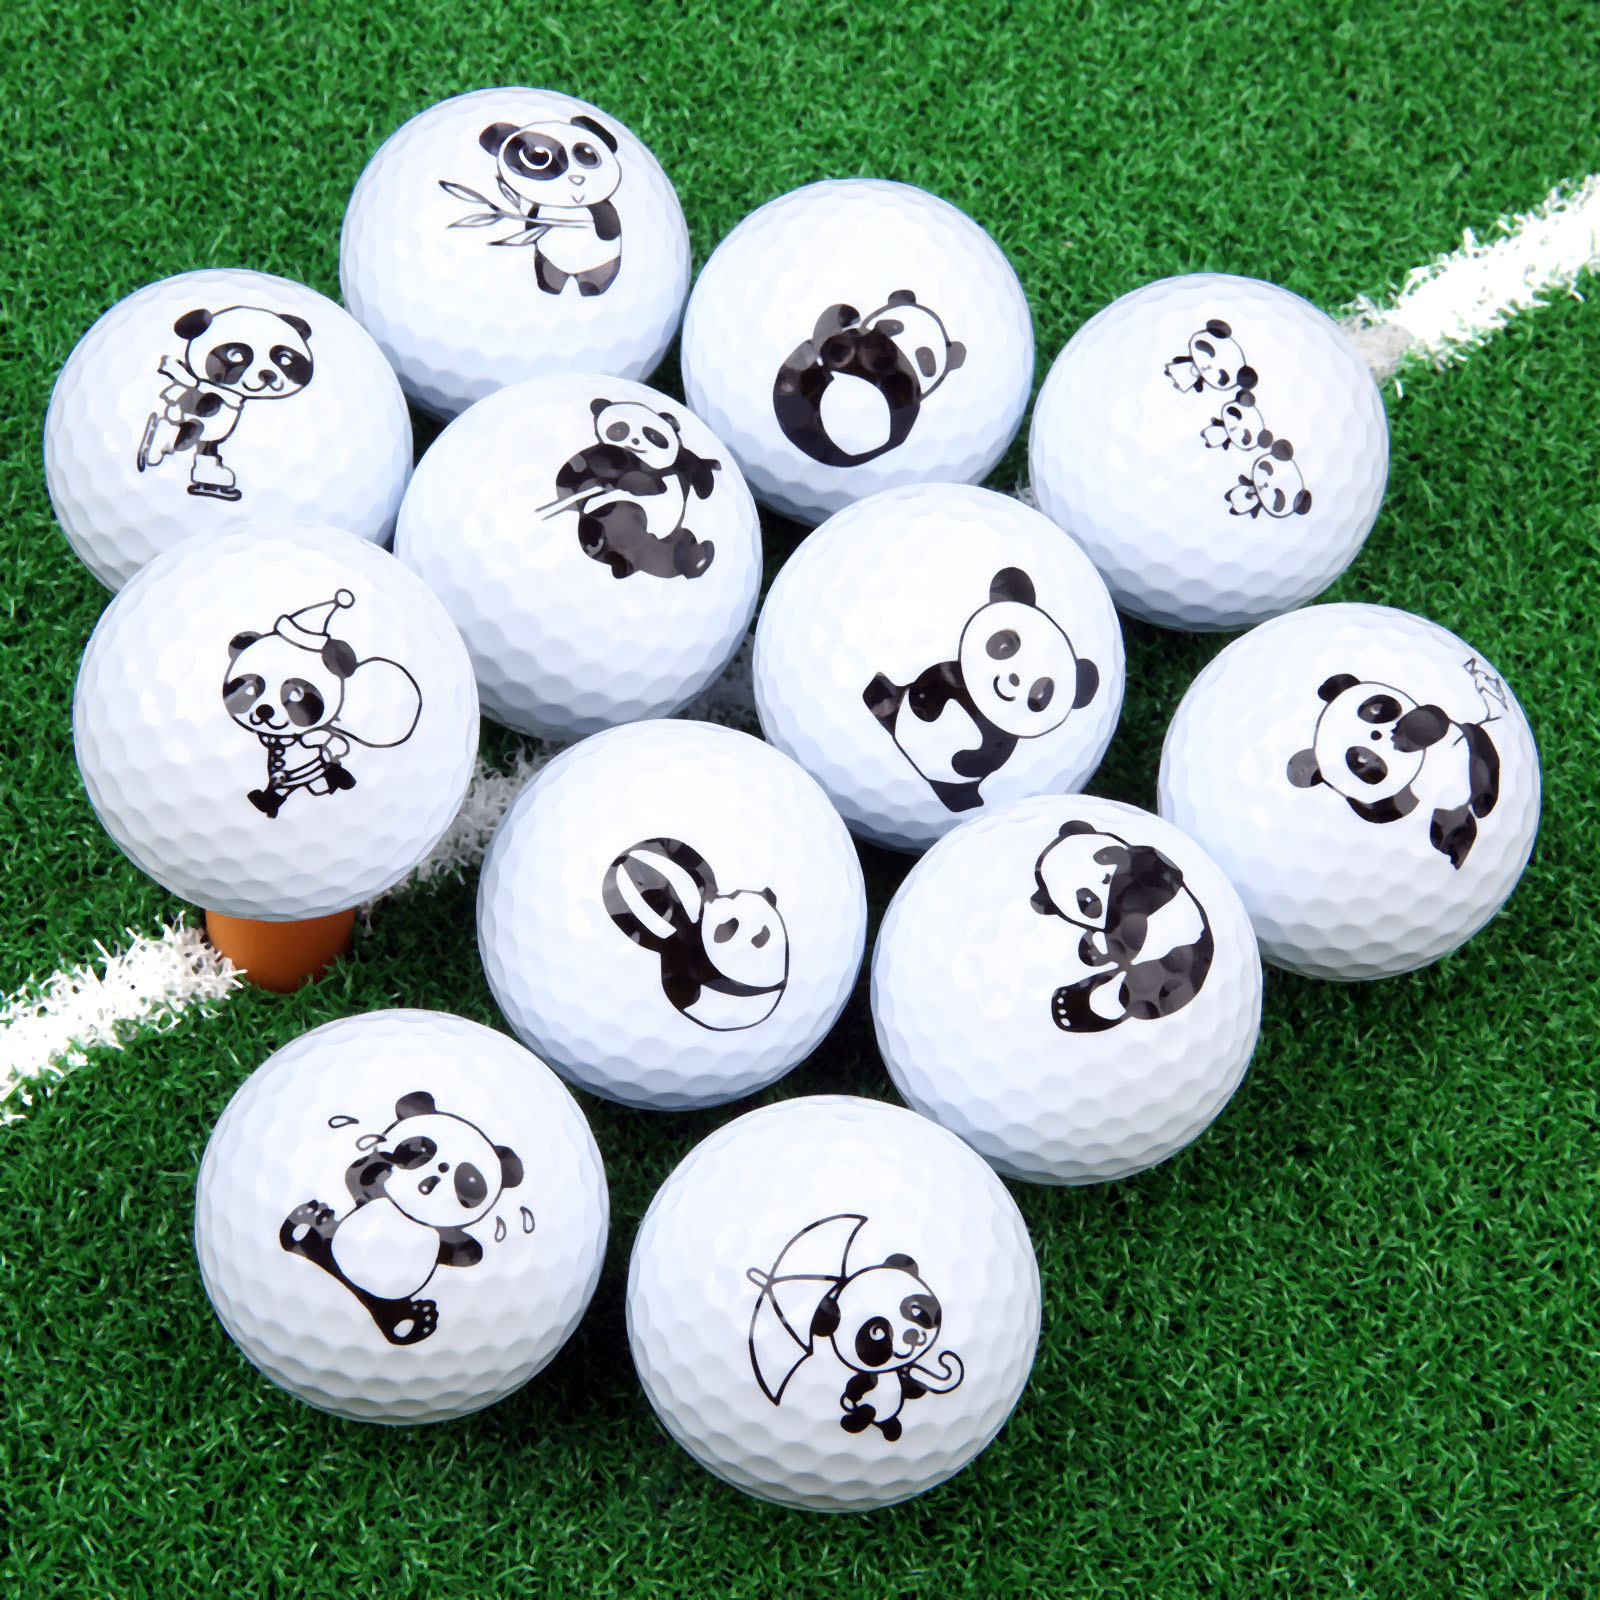 1 Pc Cute Cartoon Panda Golf Ball Double Layer Synthetic Rubber Golf Practice Balls Gift Balls For Golf Range & Training 42.67mm